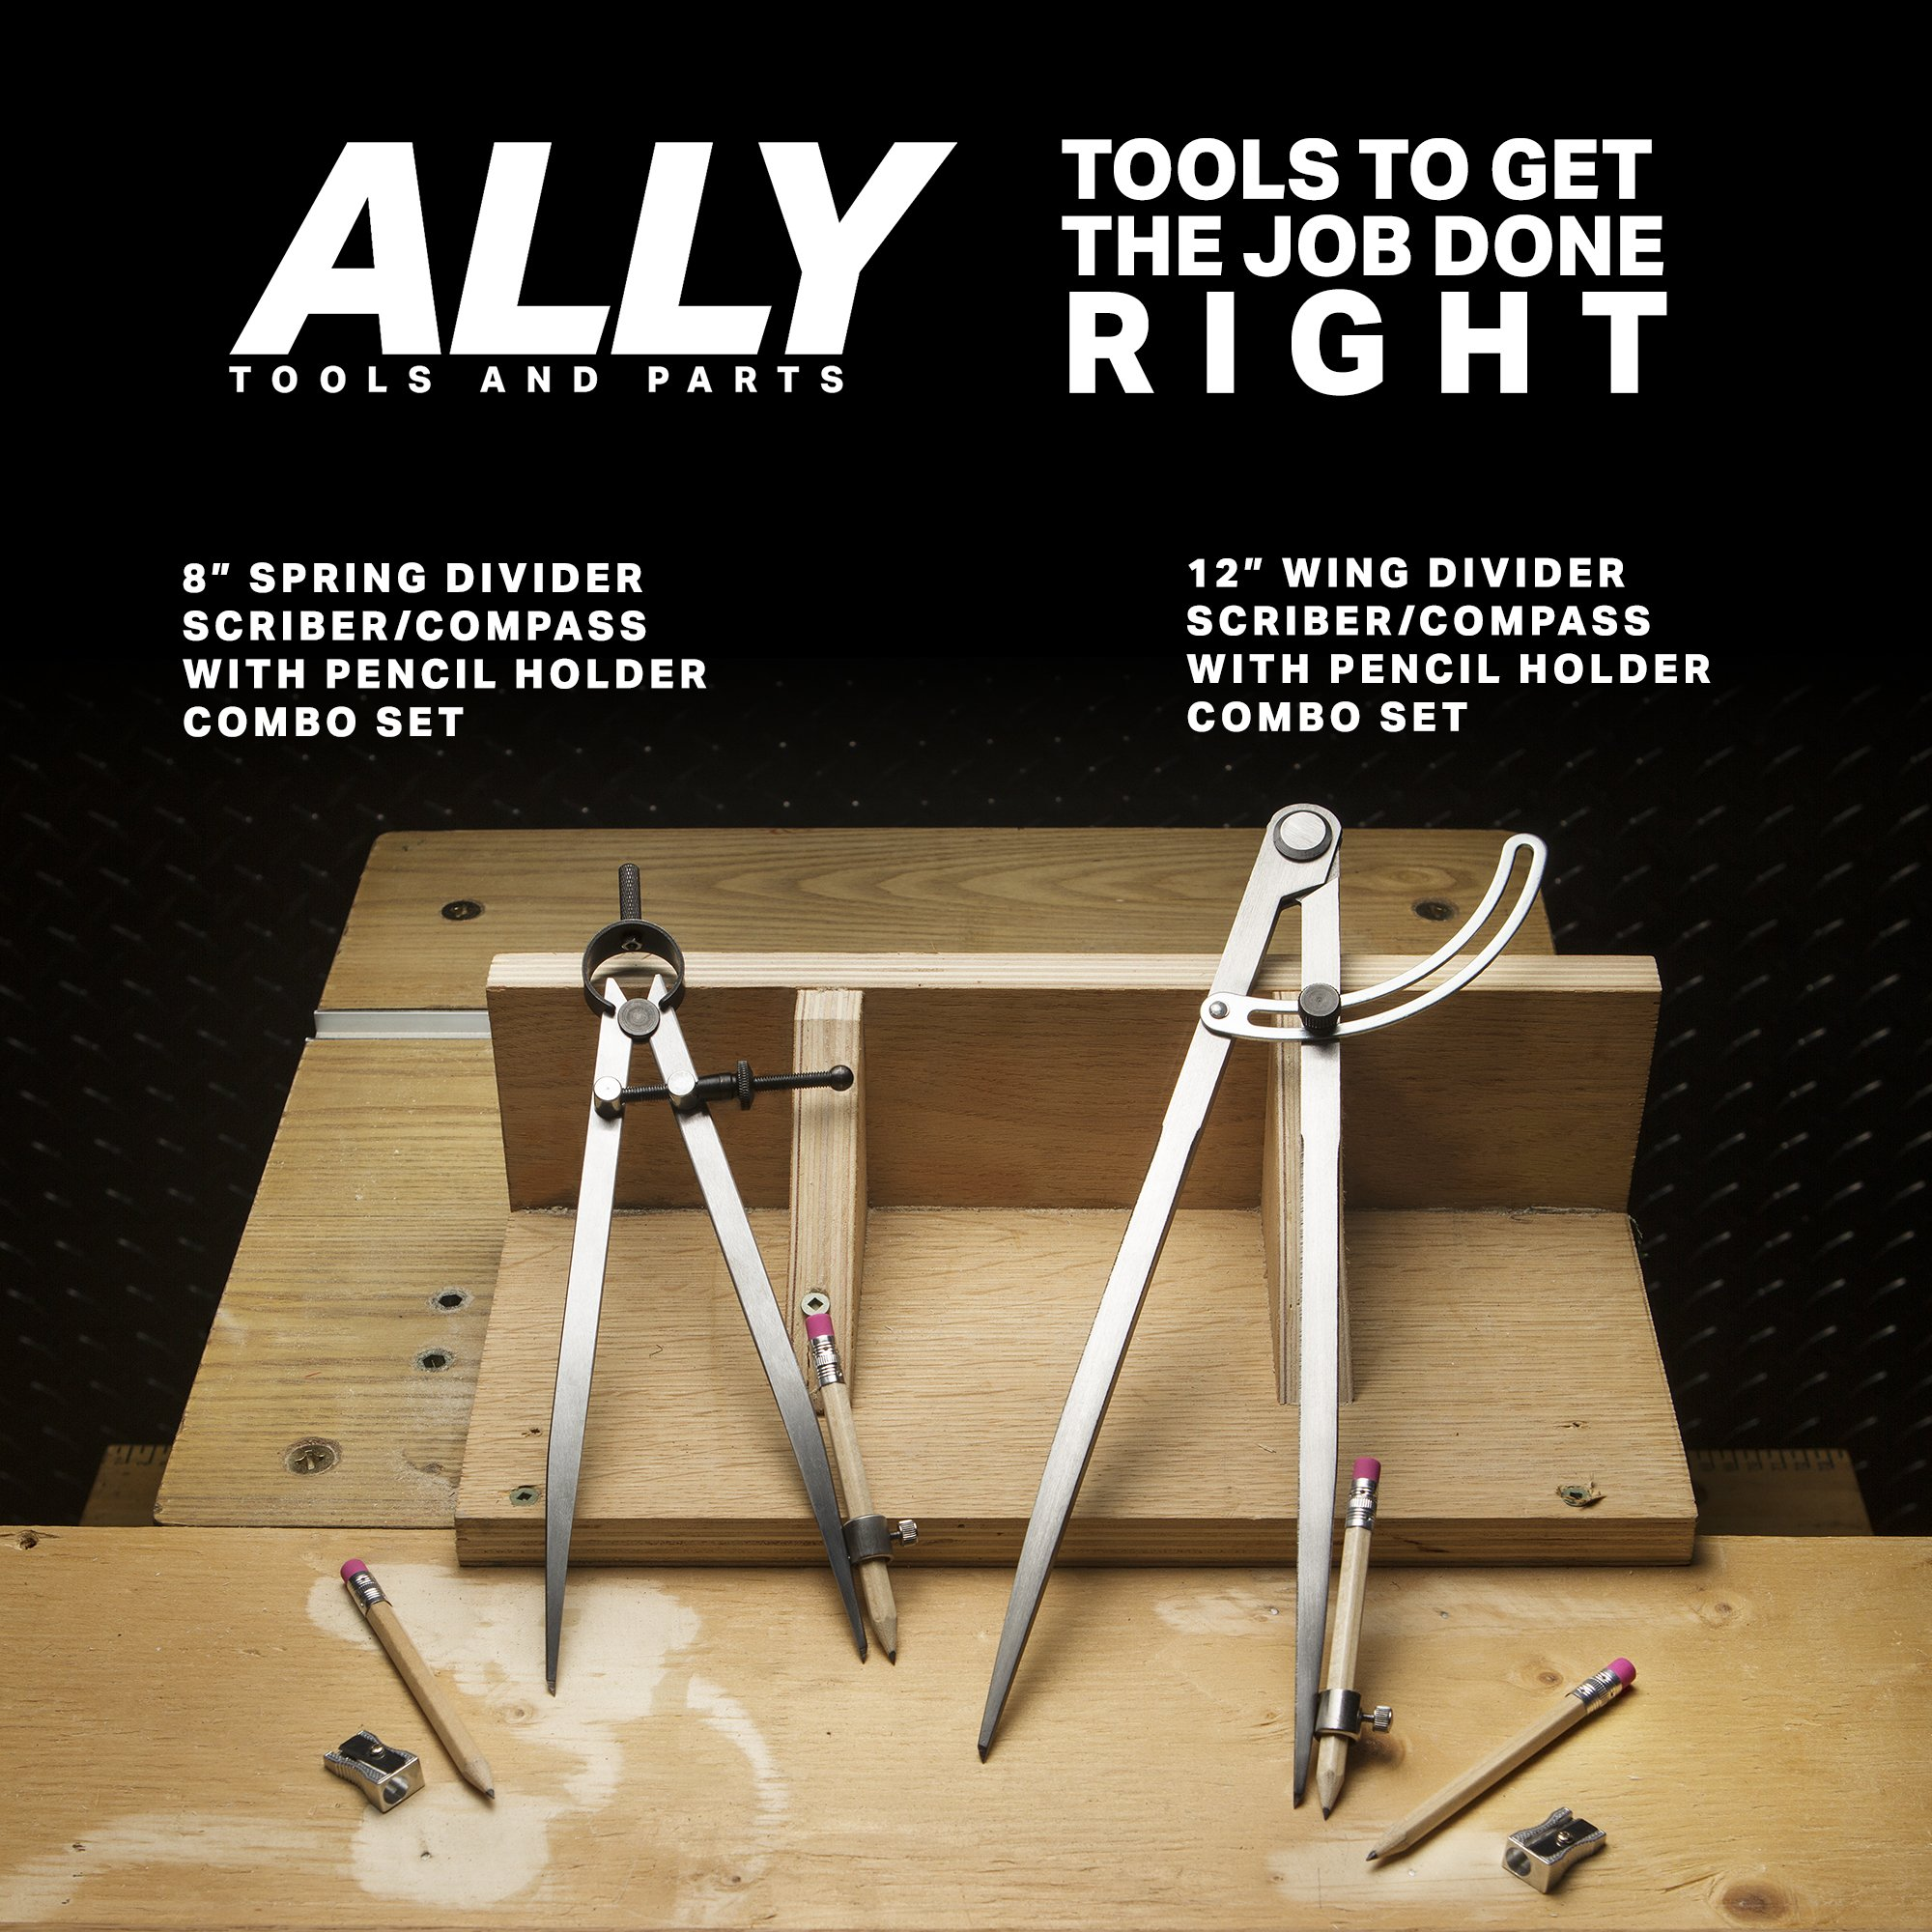 ALLY Tools 12'' Wing Divider Pencil Holder/Compass Scribe Kit INCLUDES Two Pencils and Metal Pencil Sharpener Ideal for Drawing Circles, Scribing Wood, Scribing Metal, Drafting, and Map Plotting by ALLY Tools and Parts (Image #7)